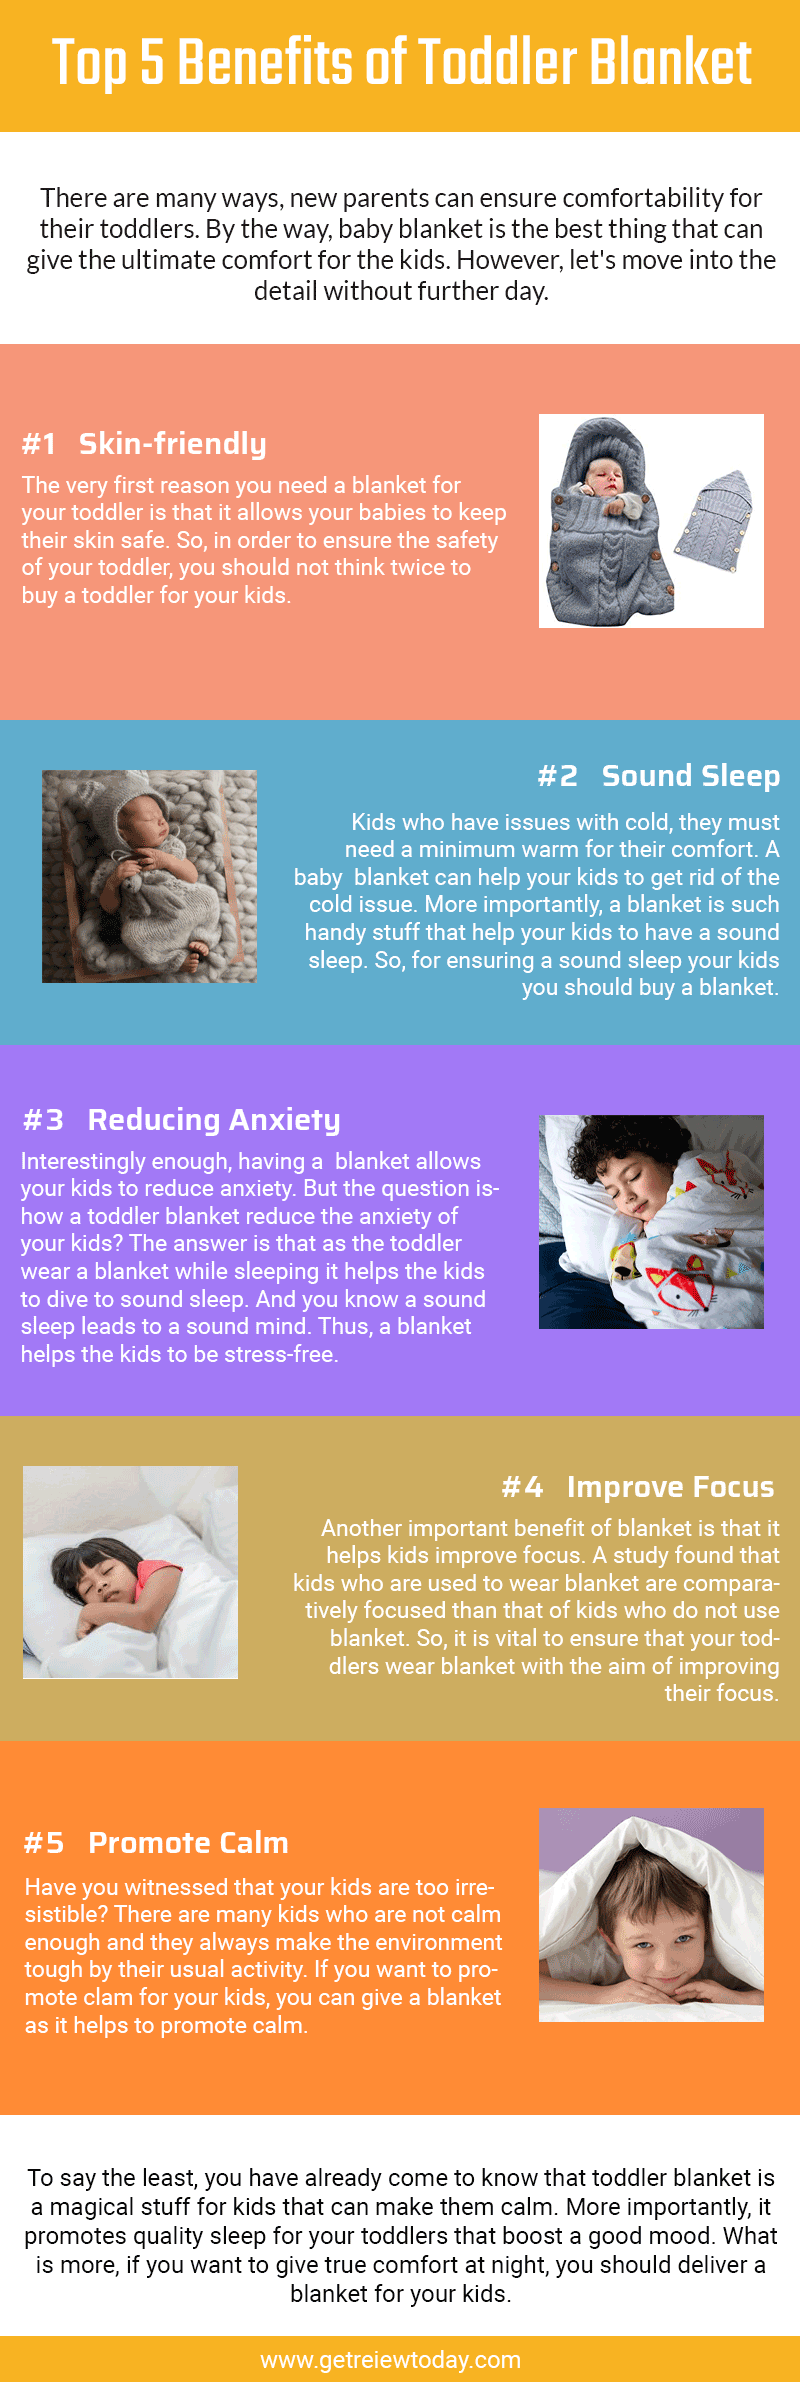 Top 5 Benefits of Toddler Blanket